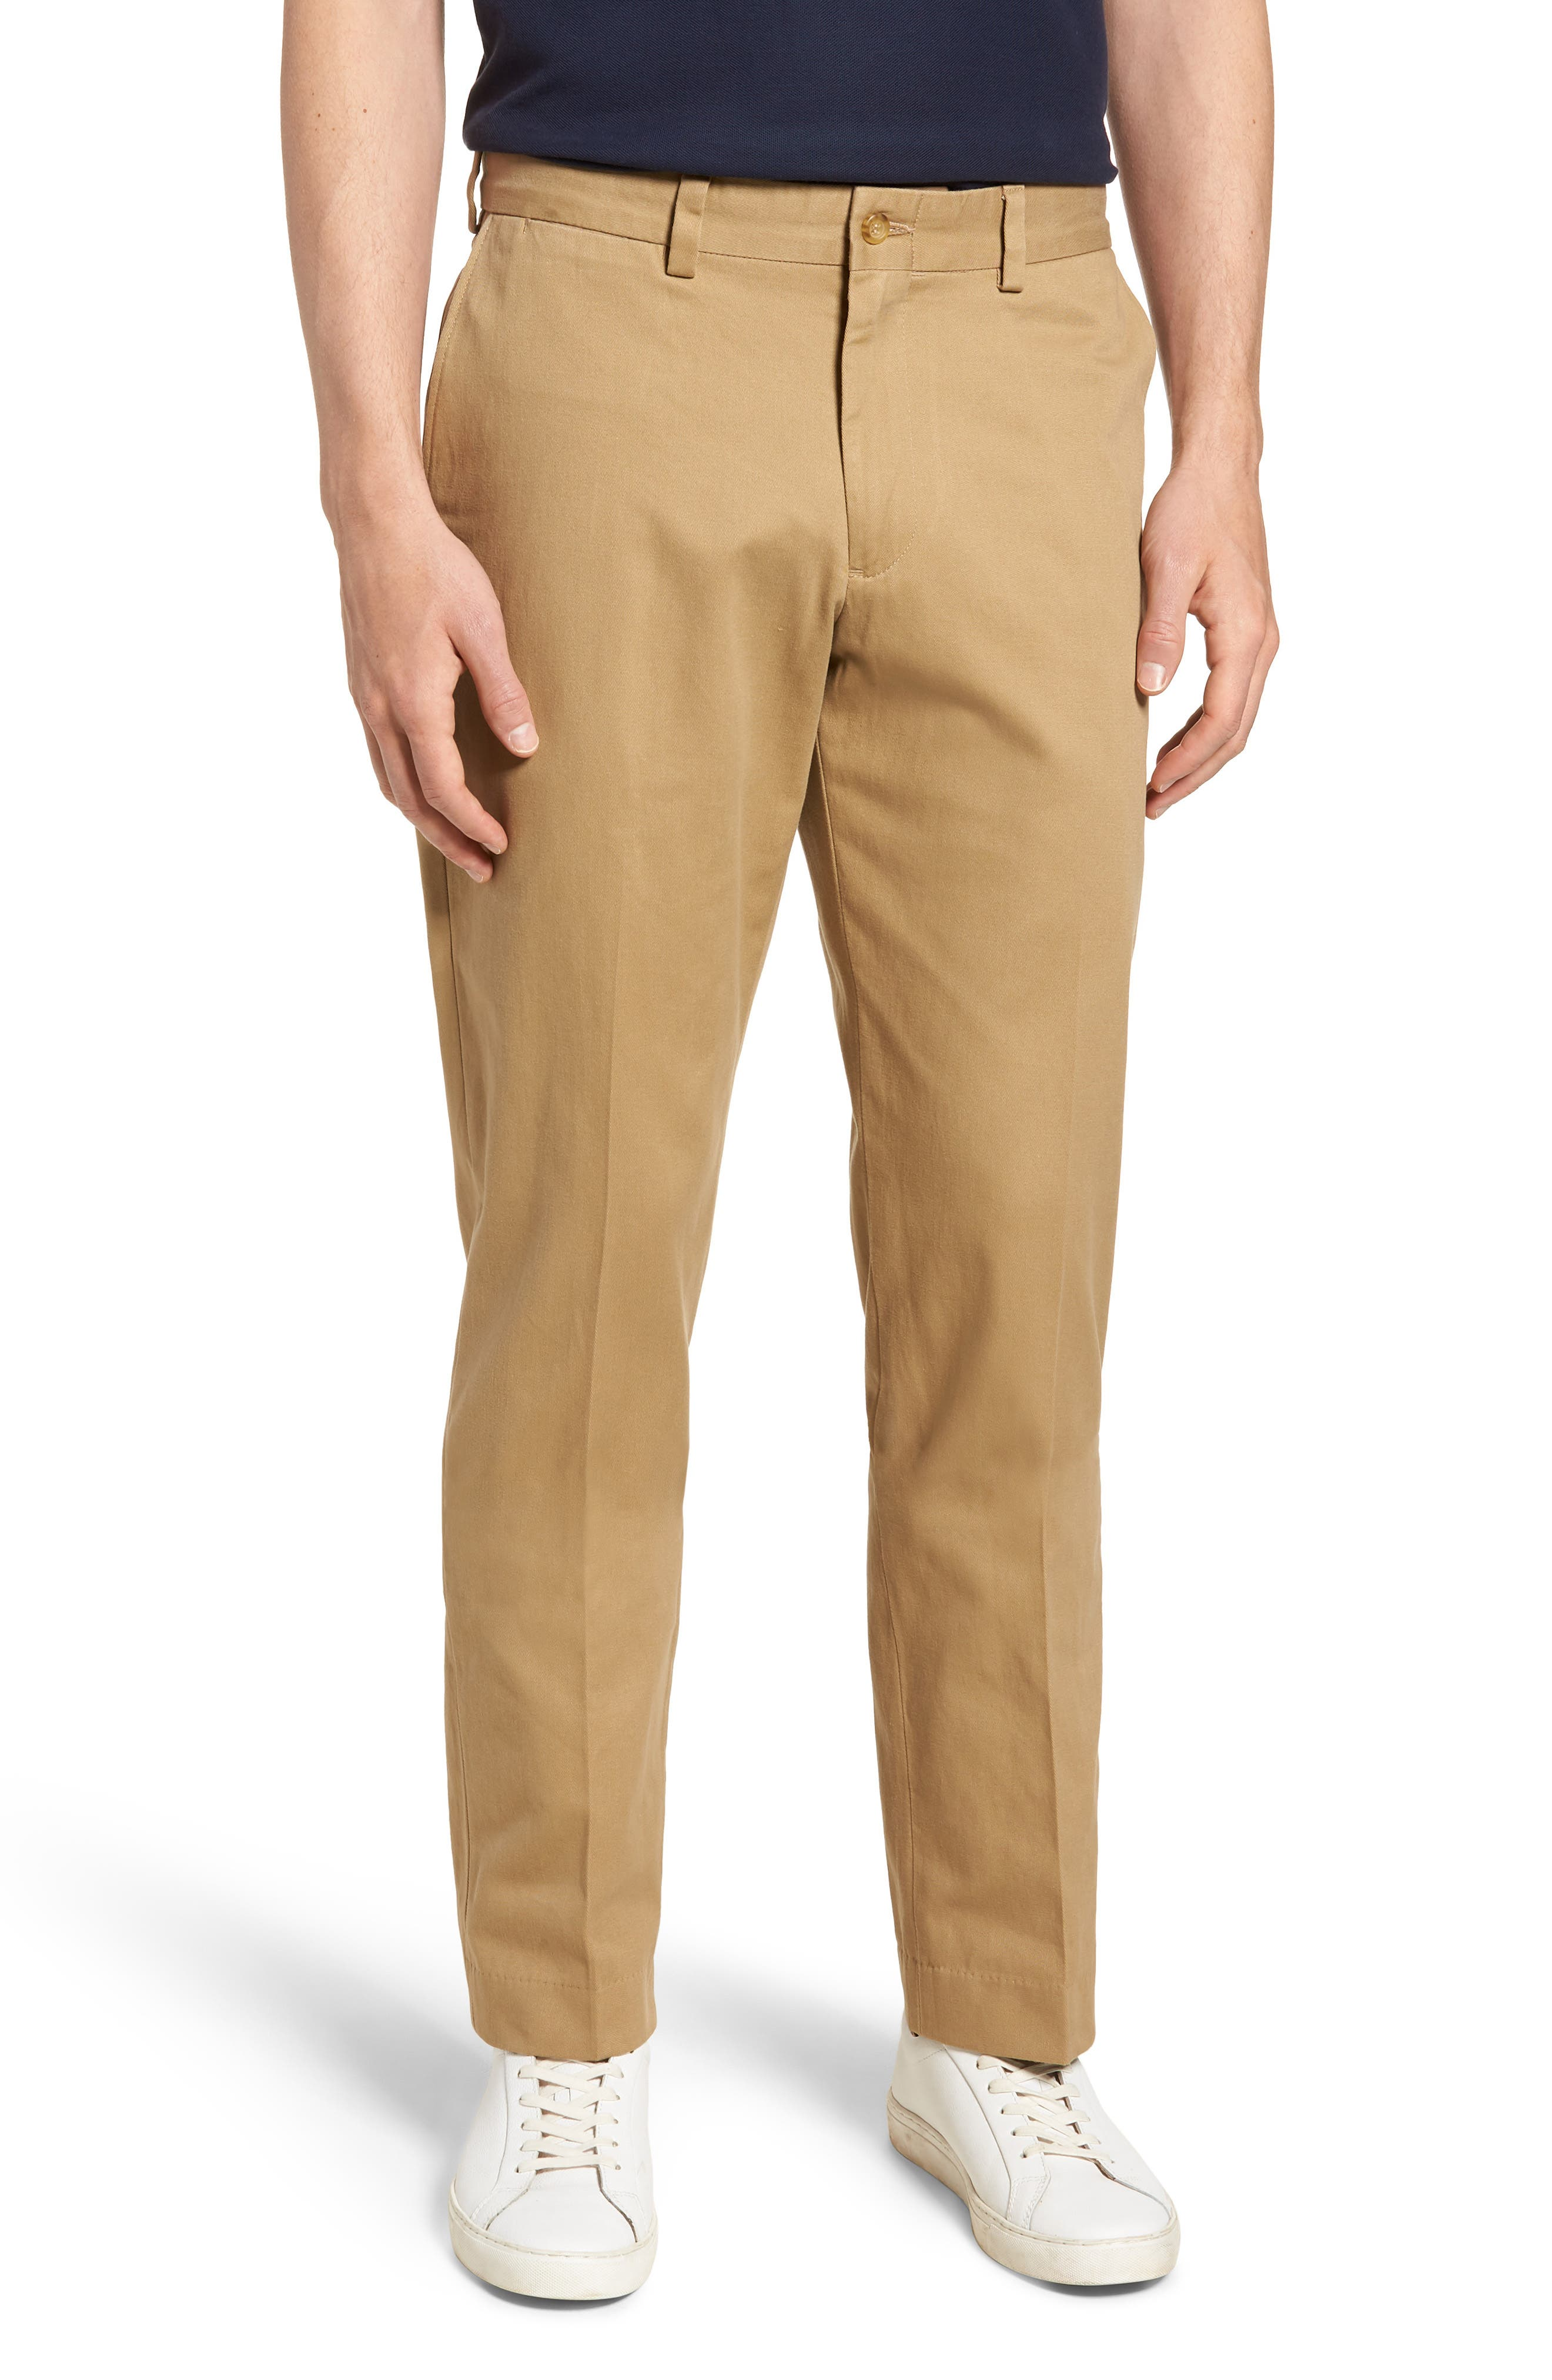 M3 Straight Fit Vintage Twill Flat Front Pants,                         Main,                         color, 210